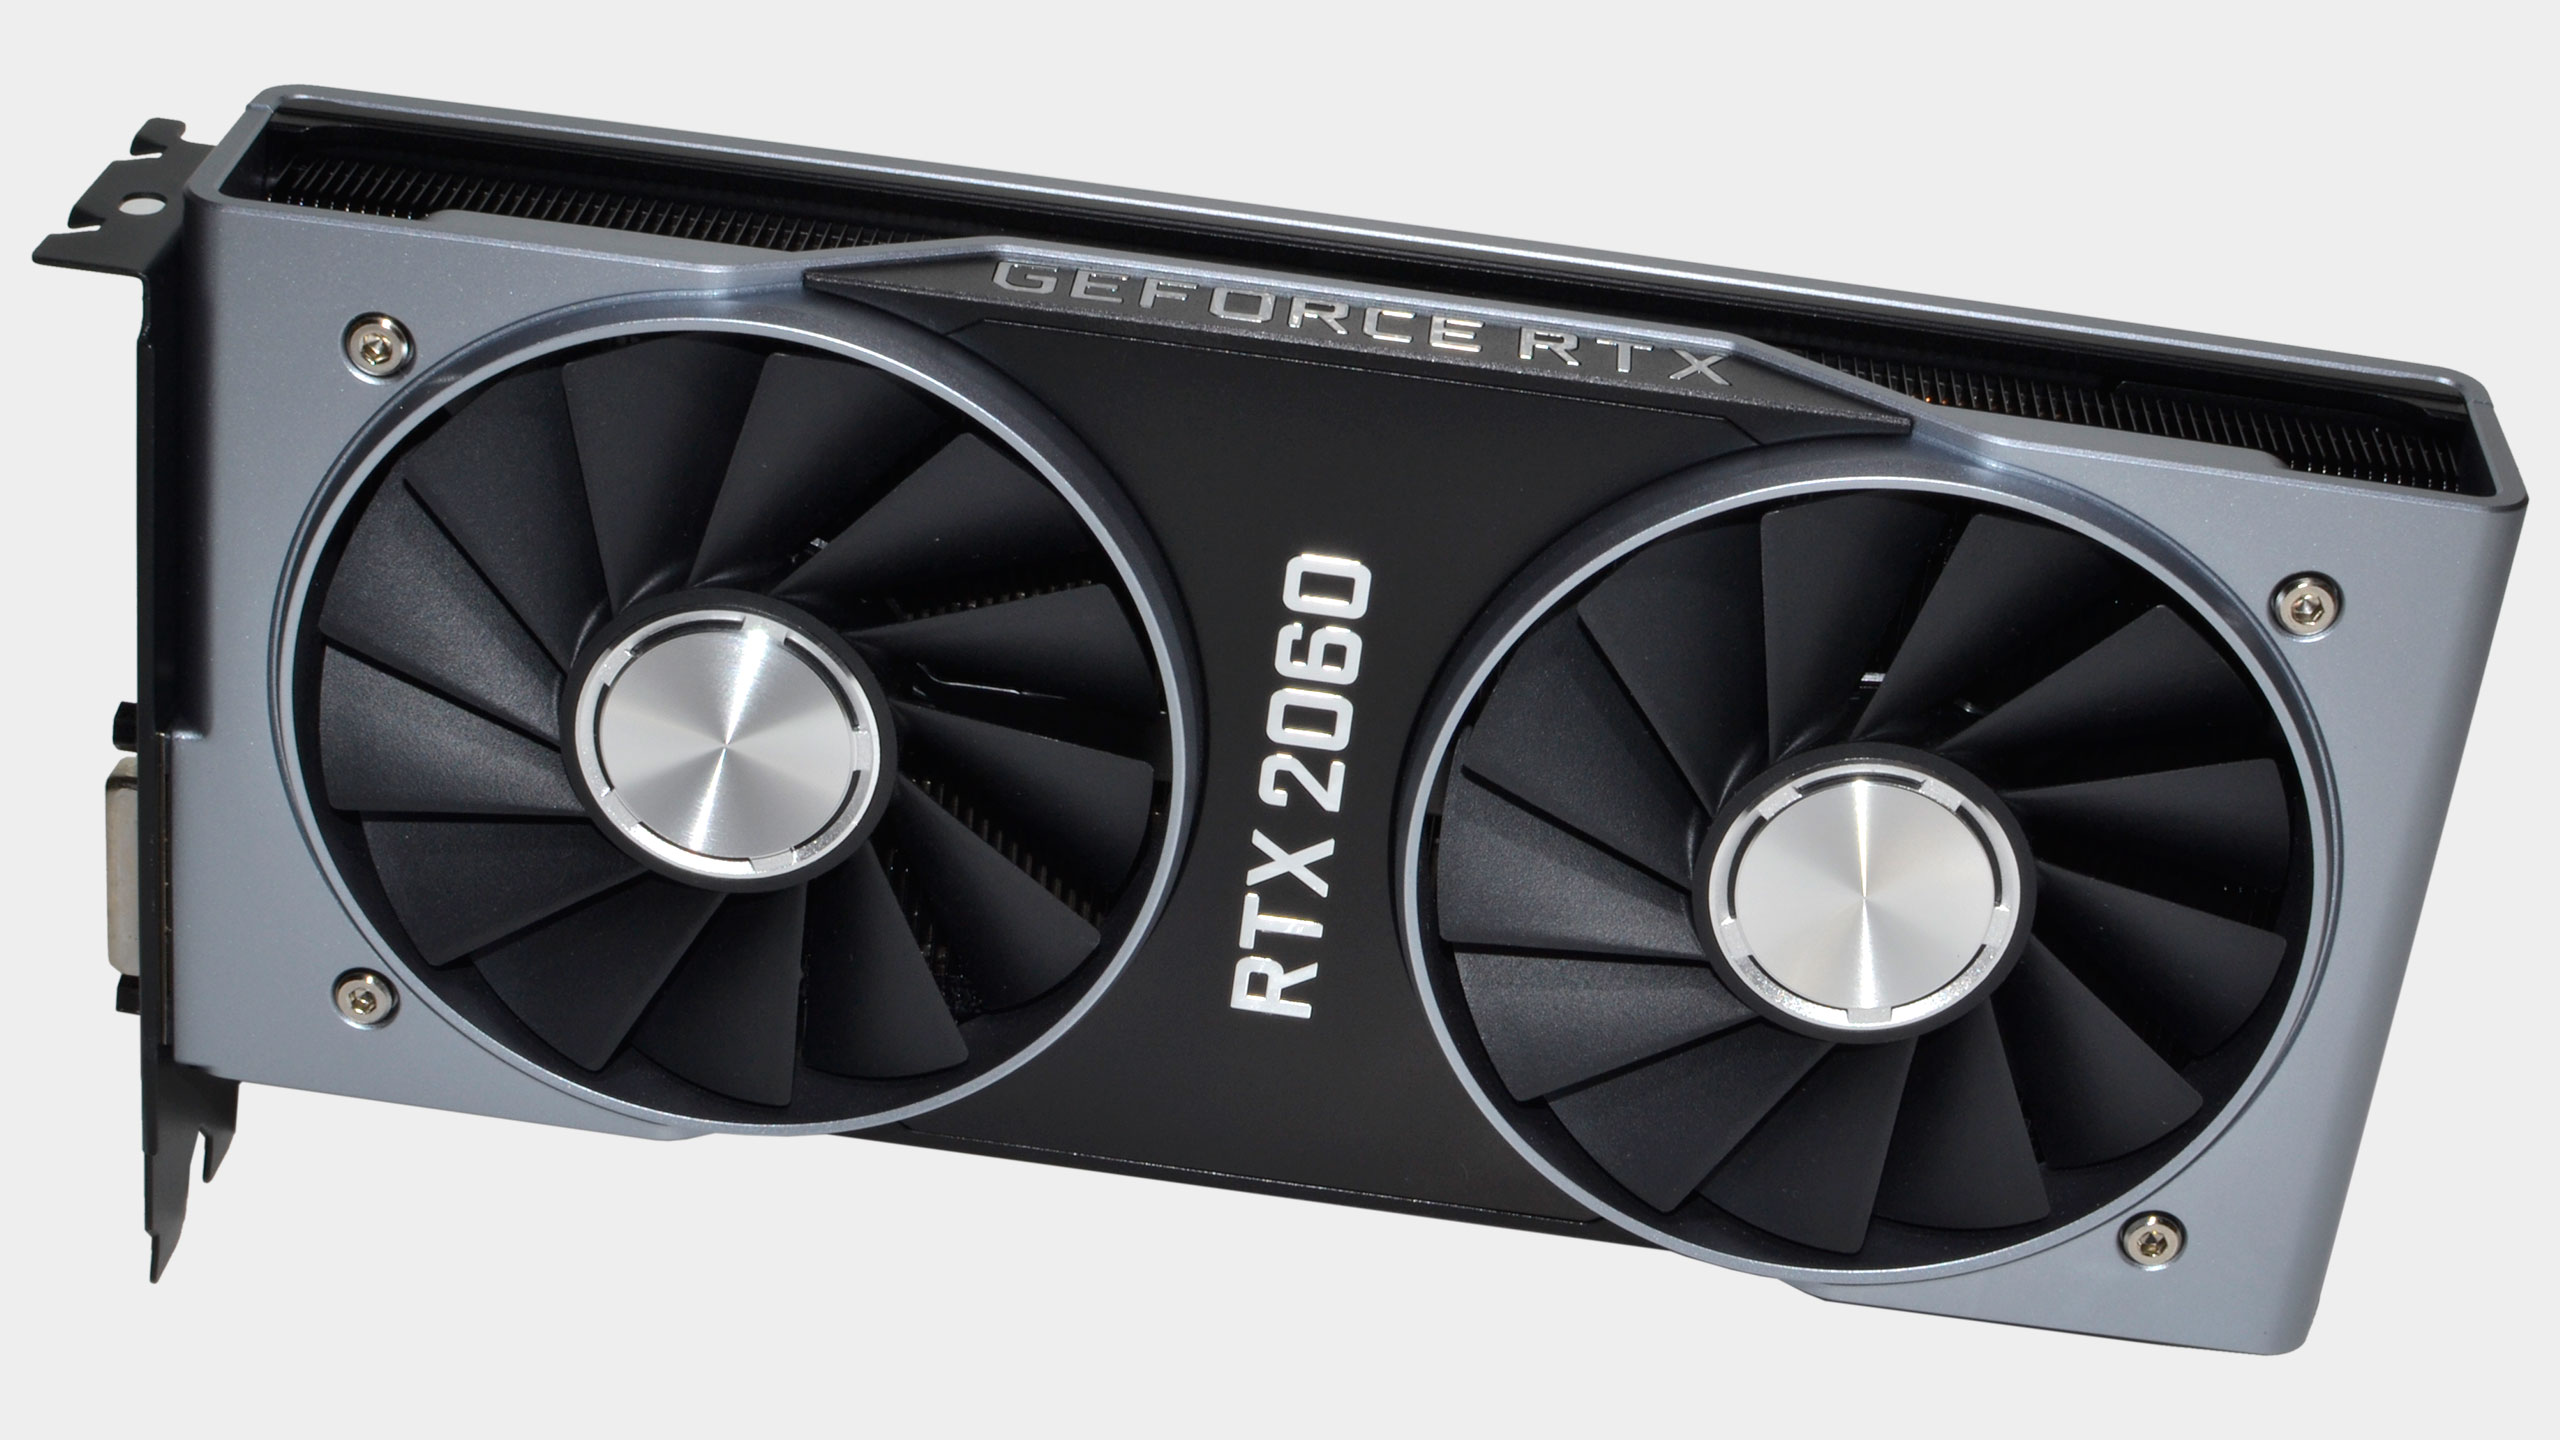 GeForce RTX 2060 vs GTX 1070: Which graphics card should you buy?